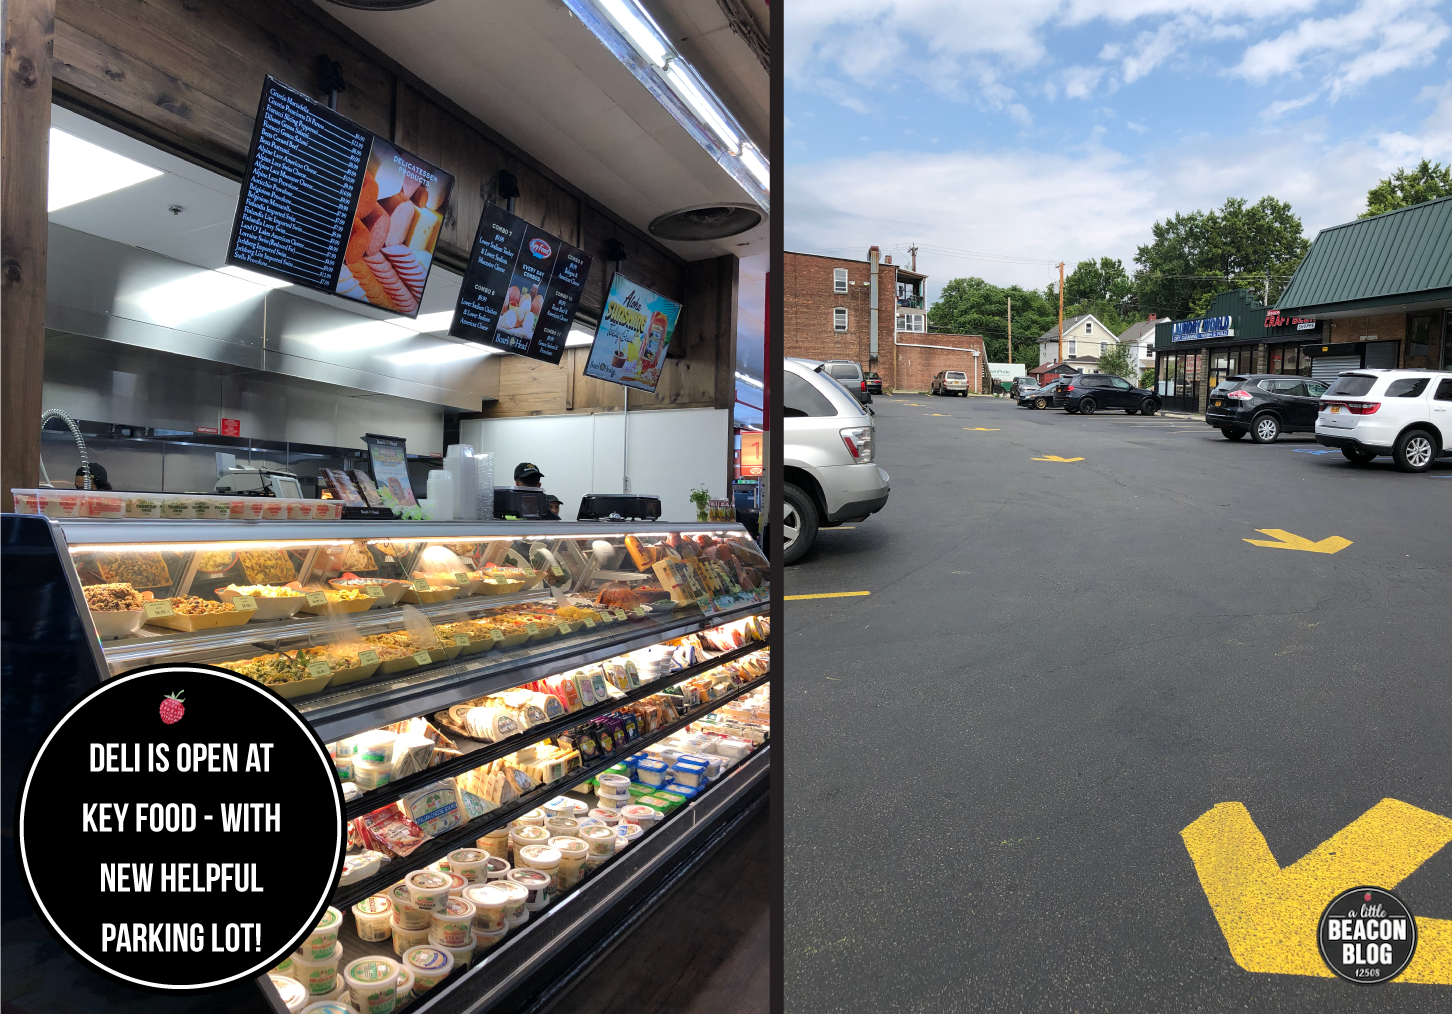 Left: The new deli, with all your favorite cheese and spread options back in the case.  Right: The new parking lot with arrows to help keep people moving in the right direction.  Photo Credits: Katie Hellmuth Martin